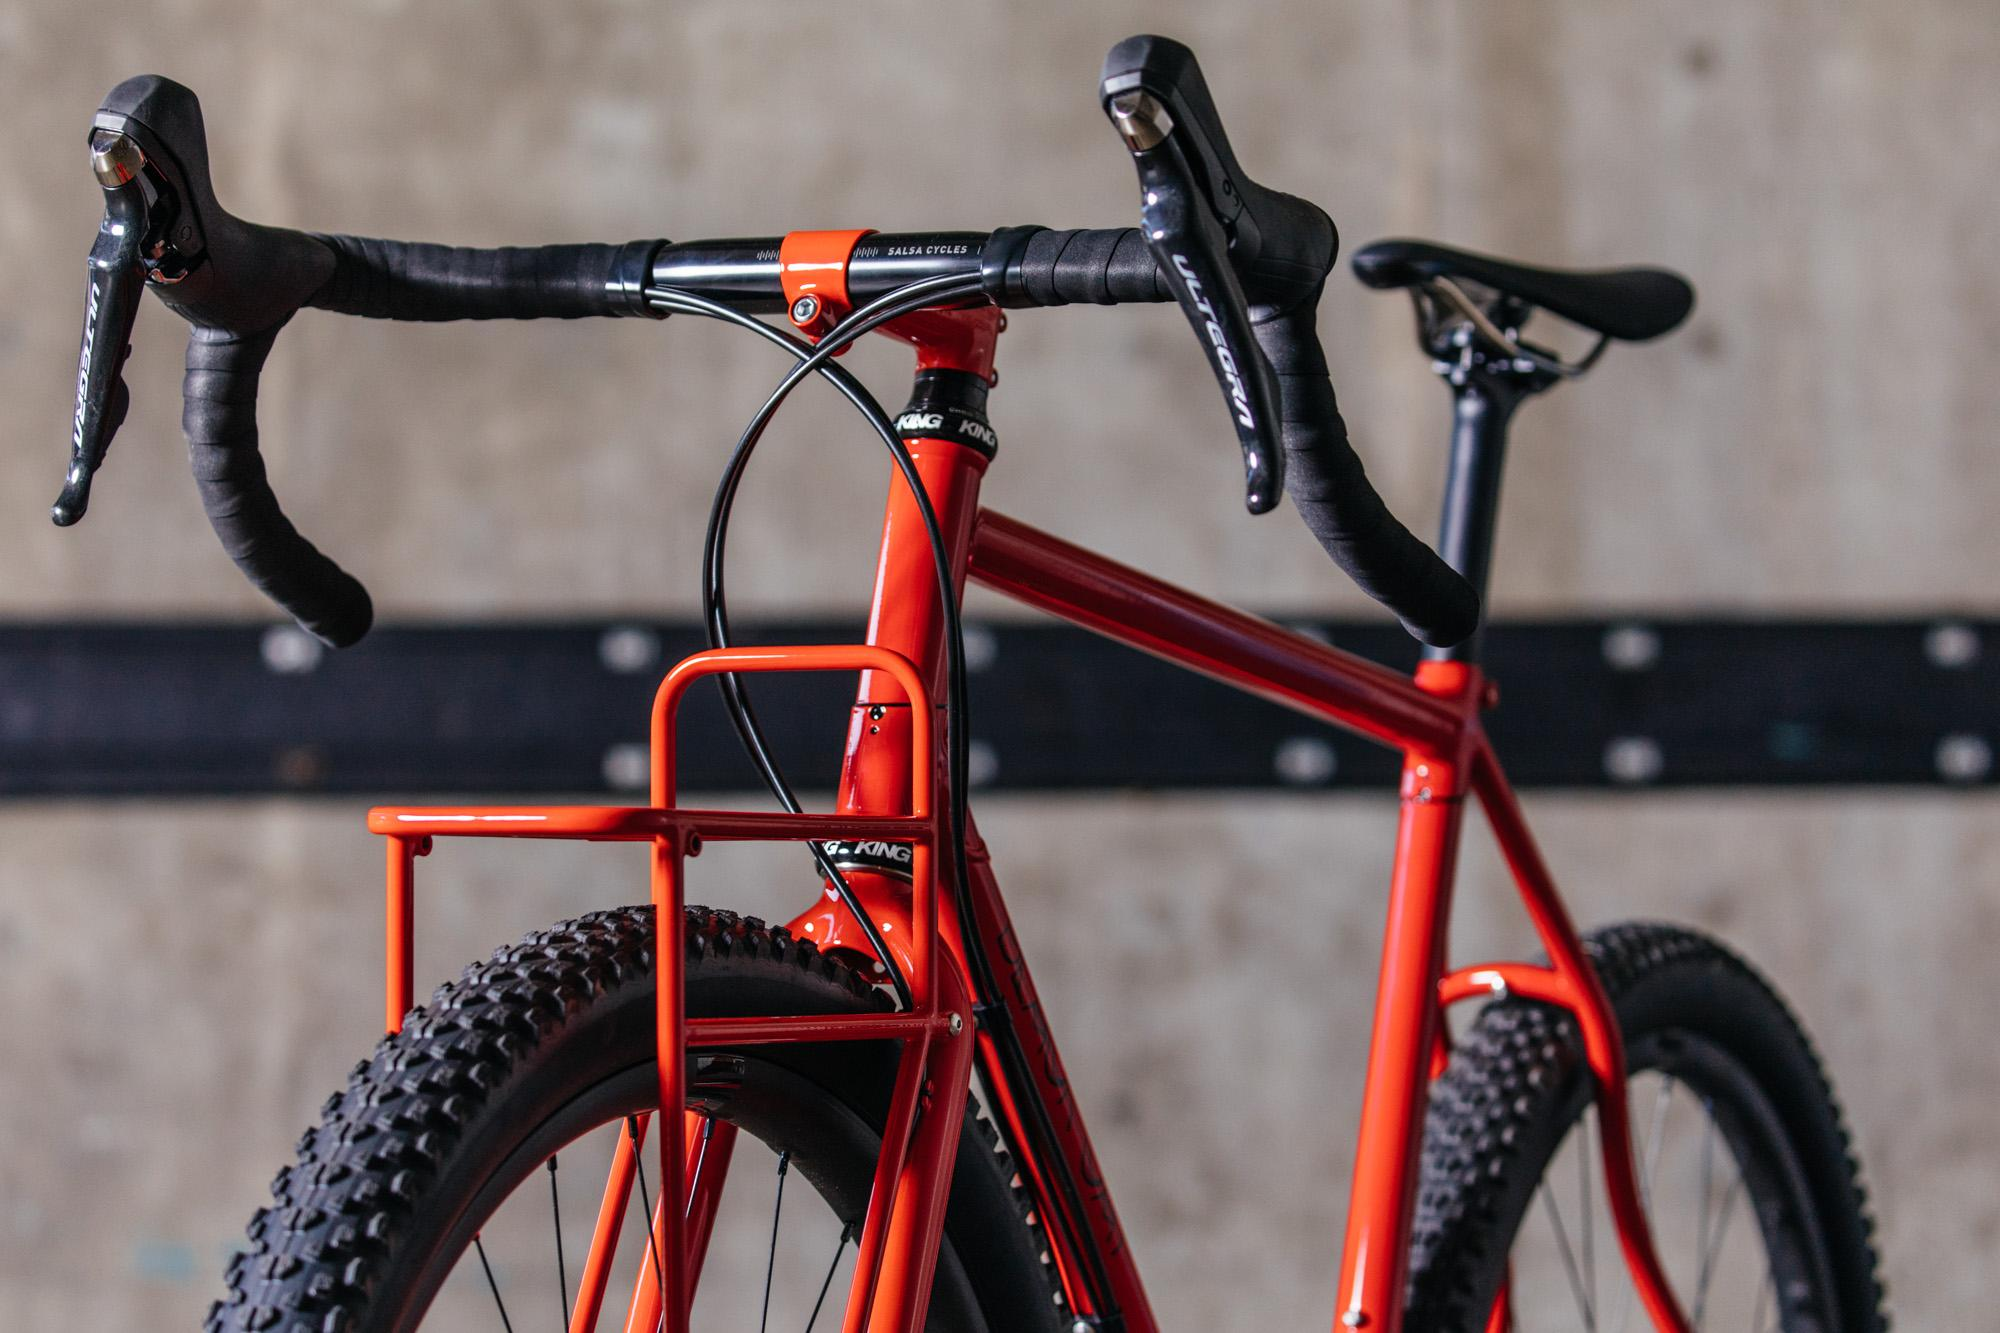 NAHBS 2019: Boosted Black Cat All Road